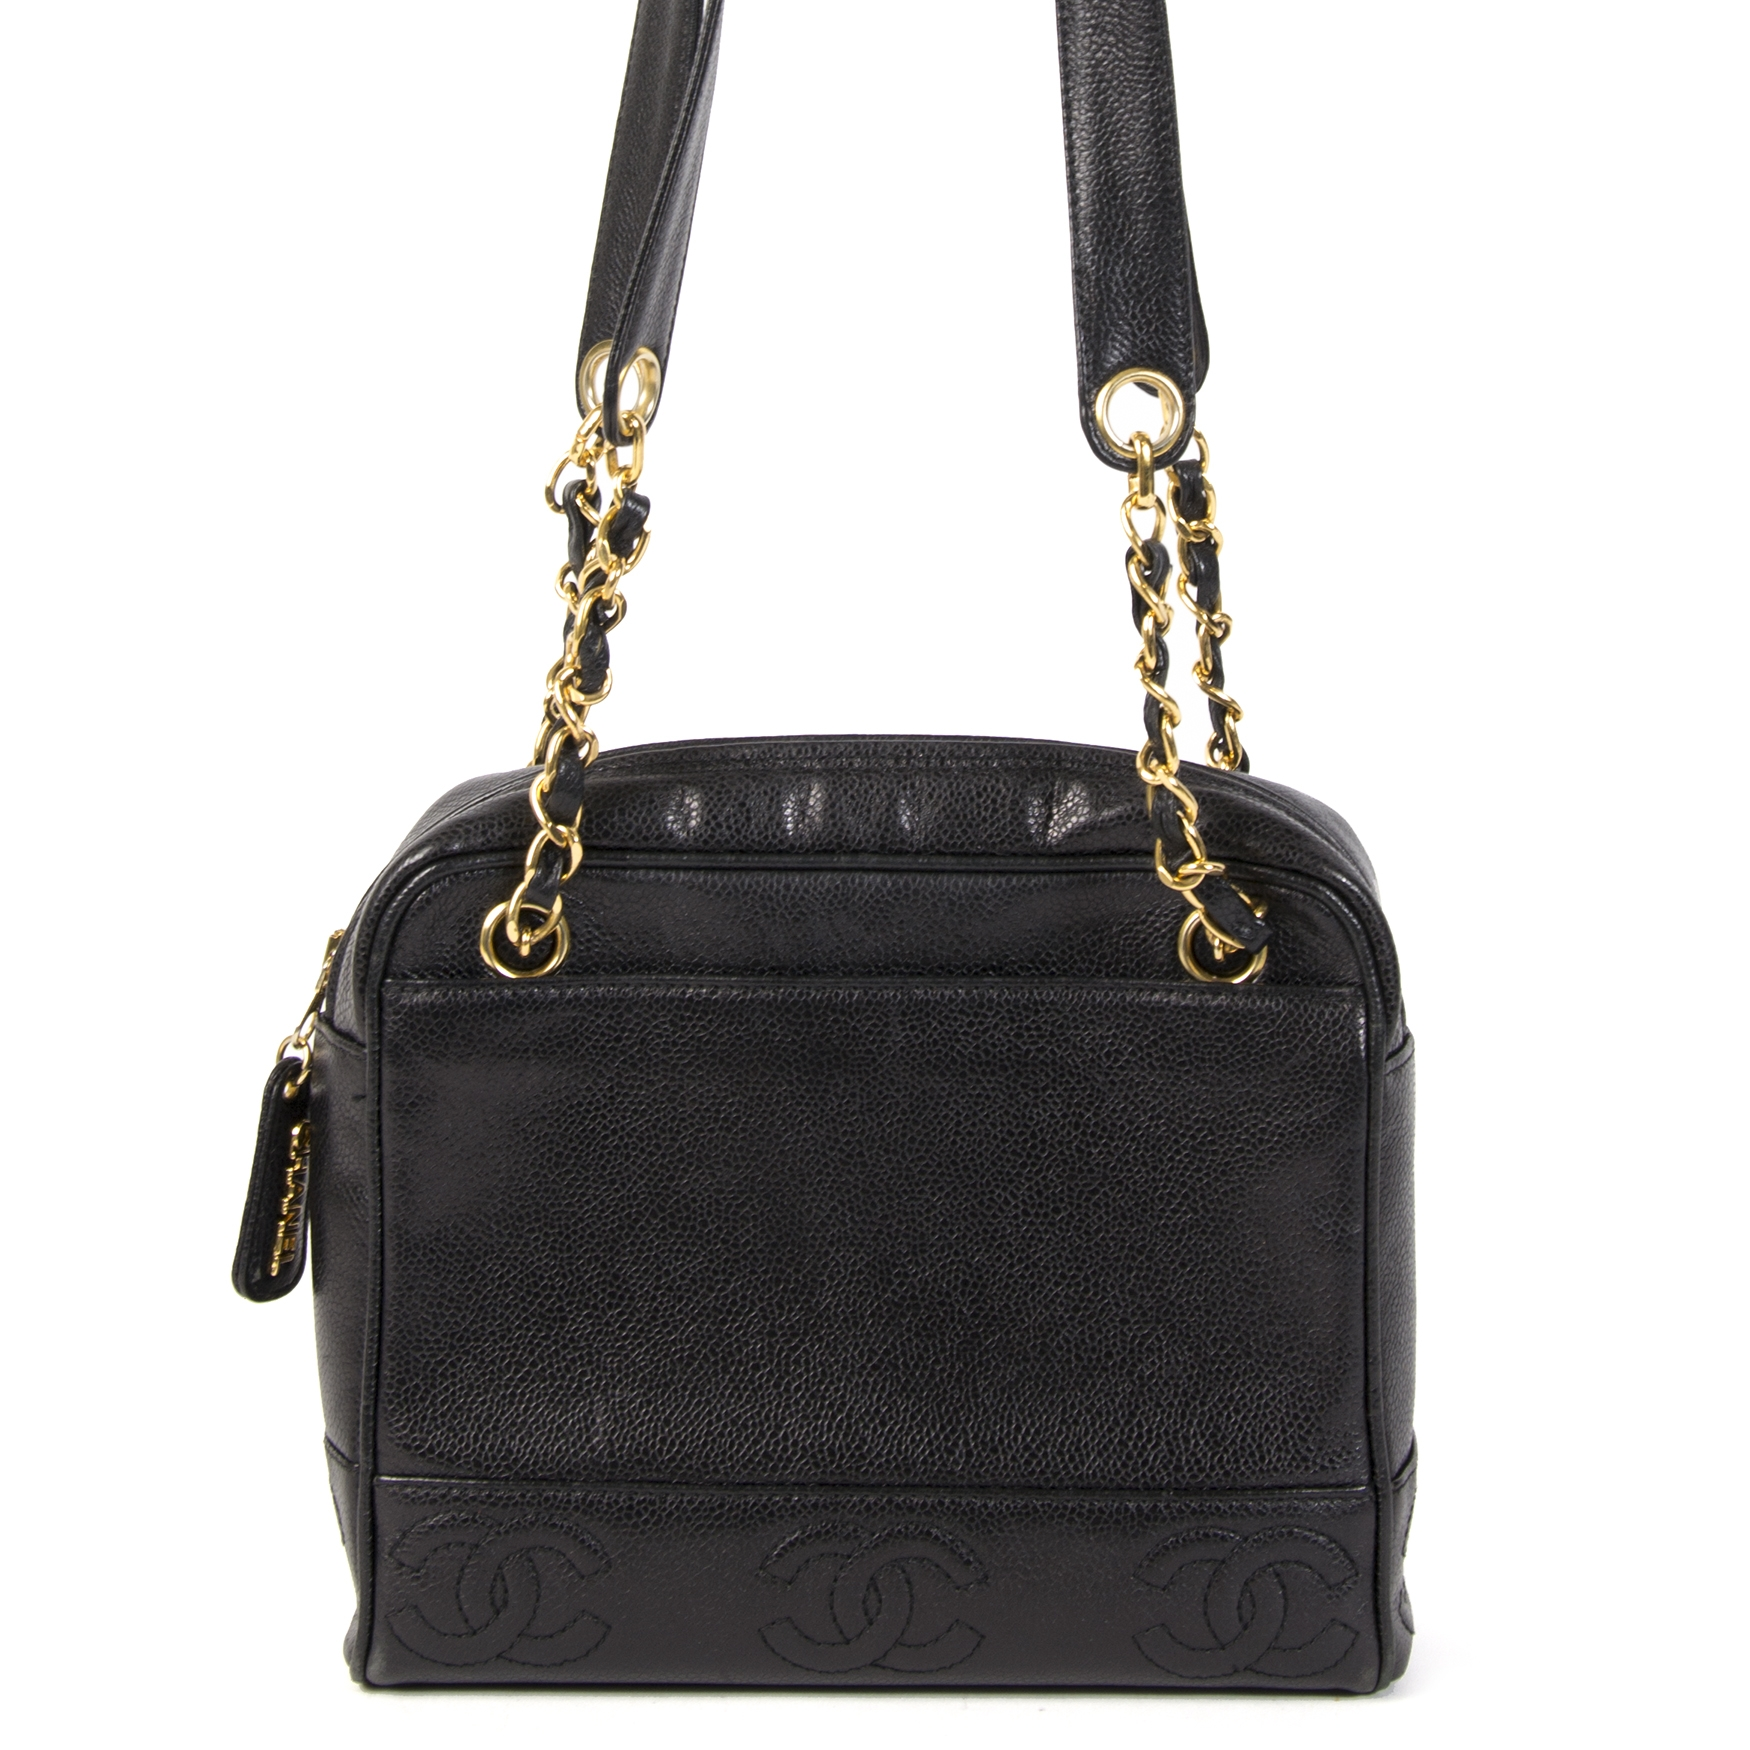 Authentic second-hand vintage Chanel Black caviar CC Shoulder Bag buy online webshop LabelLOV